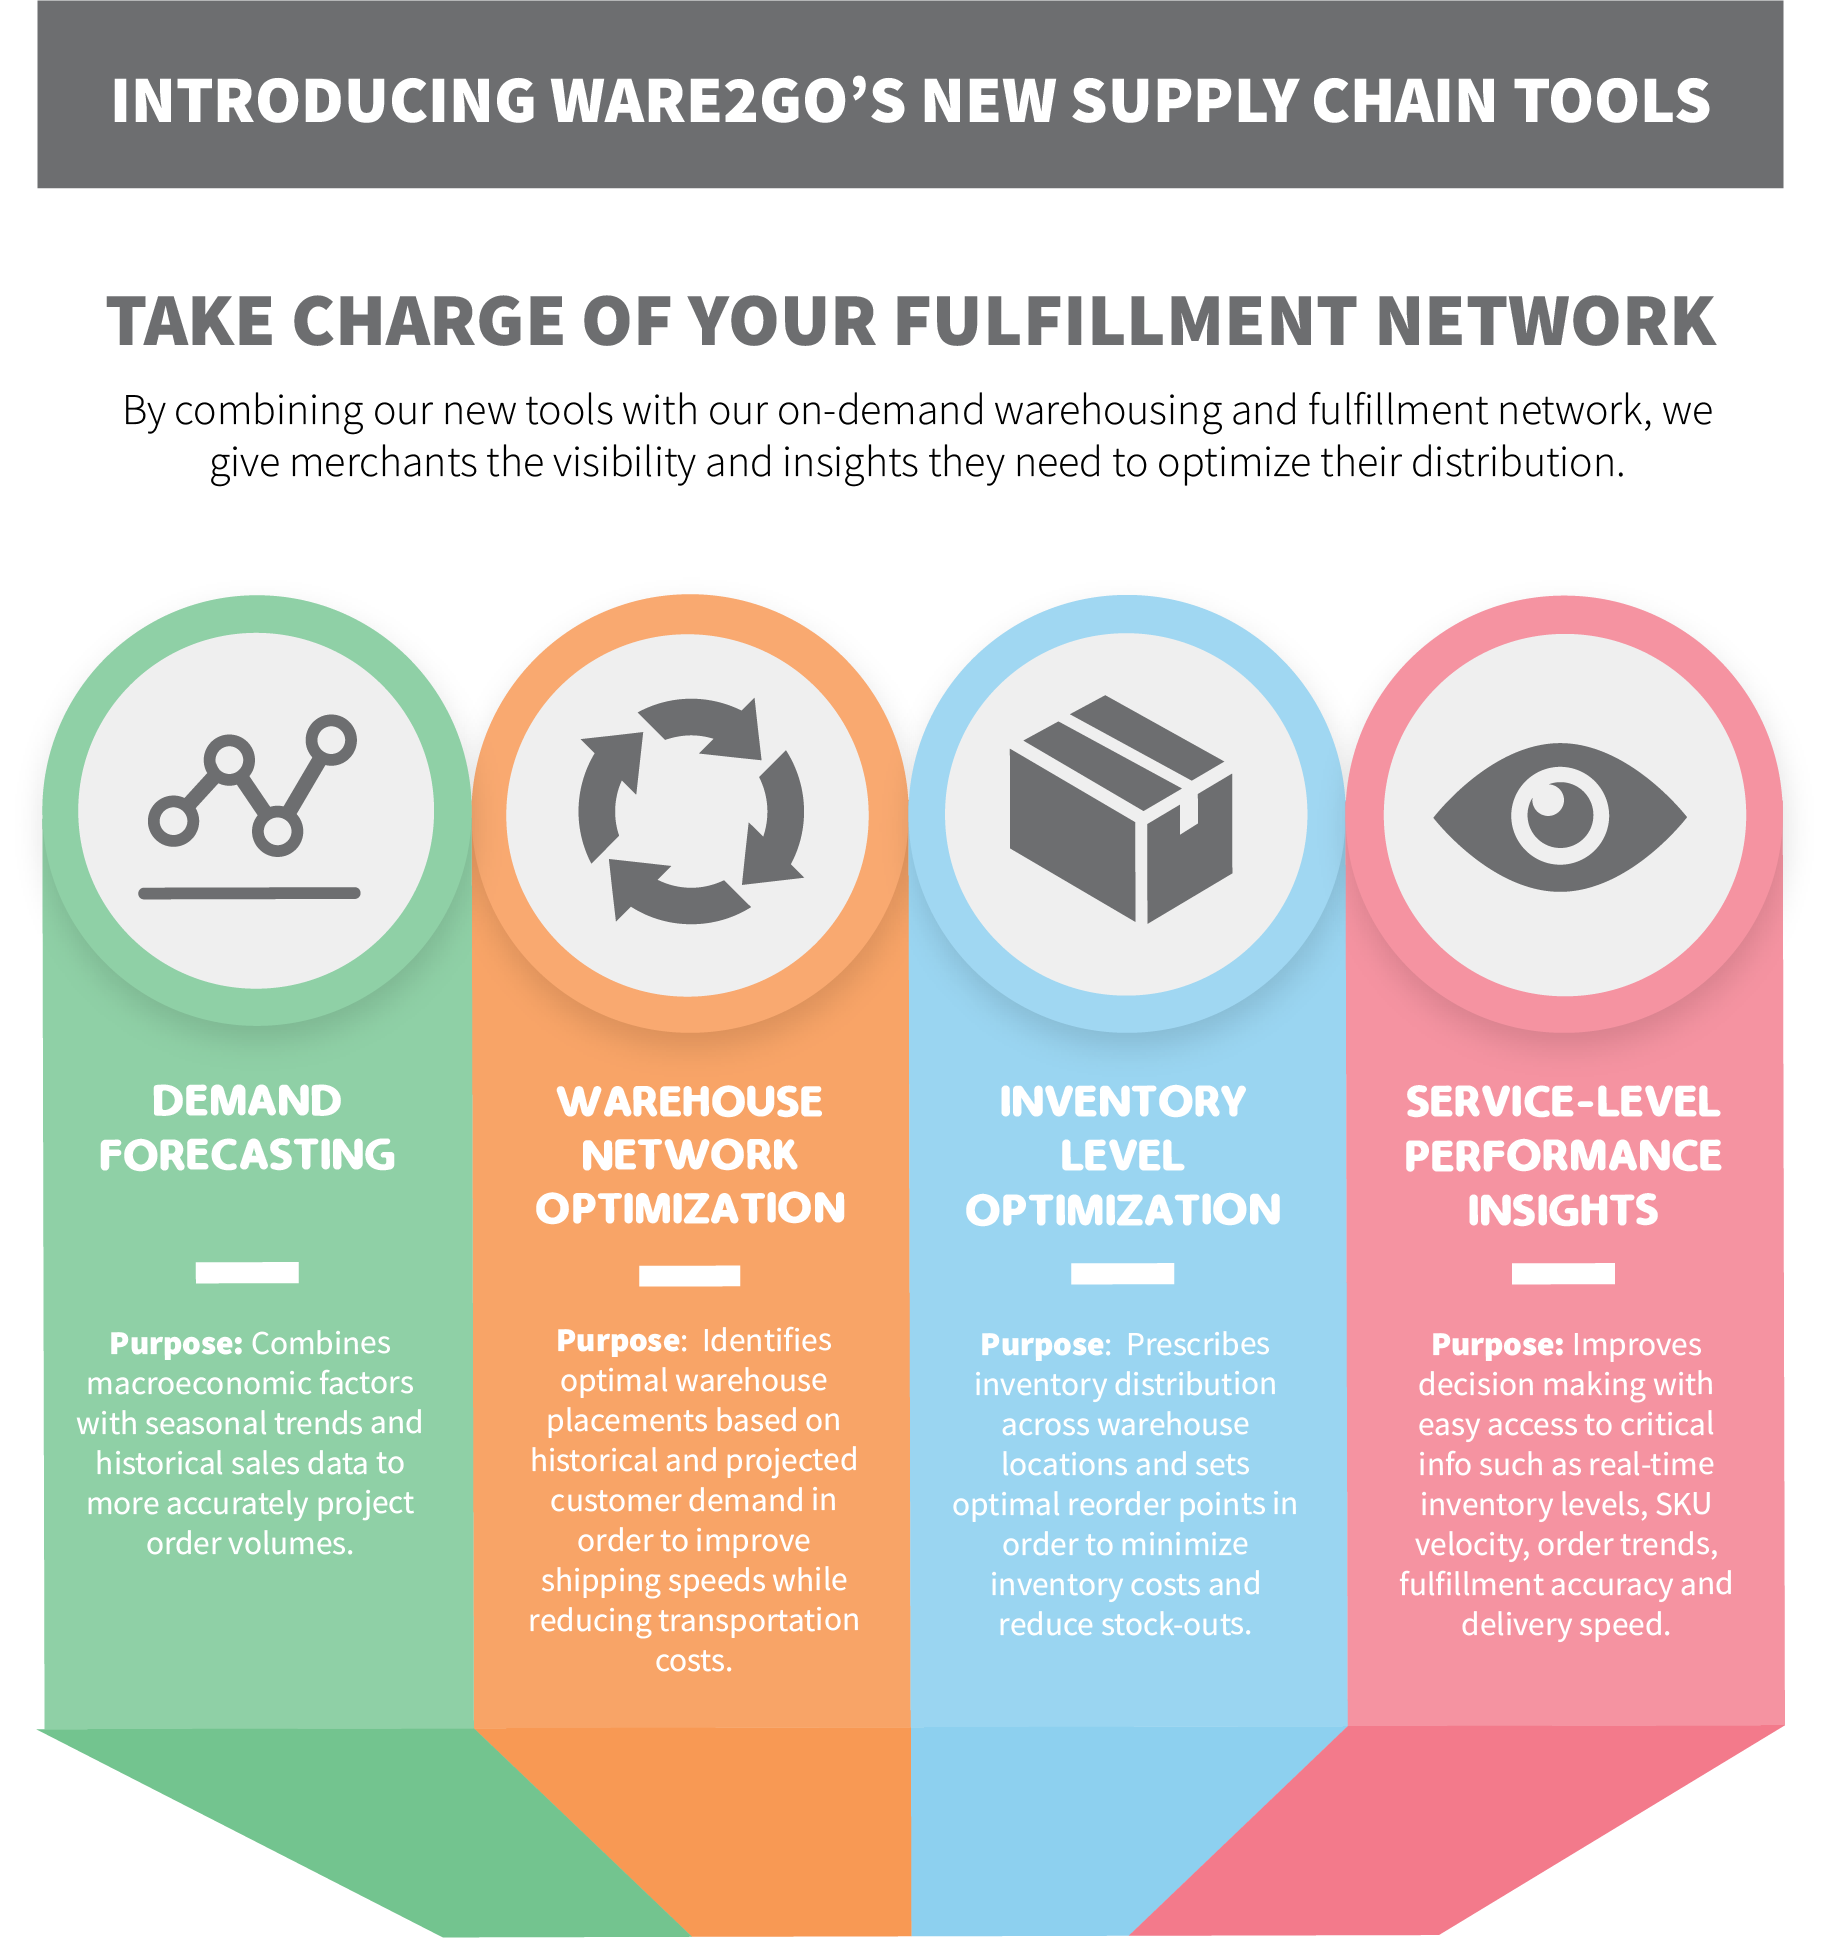 Ware2Go's new supply chain tools for merchants to optimize their distribution efficiency